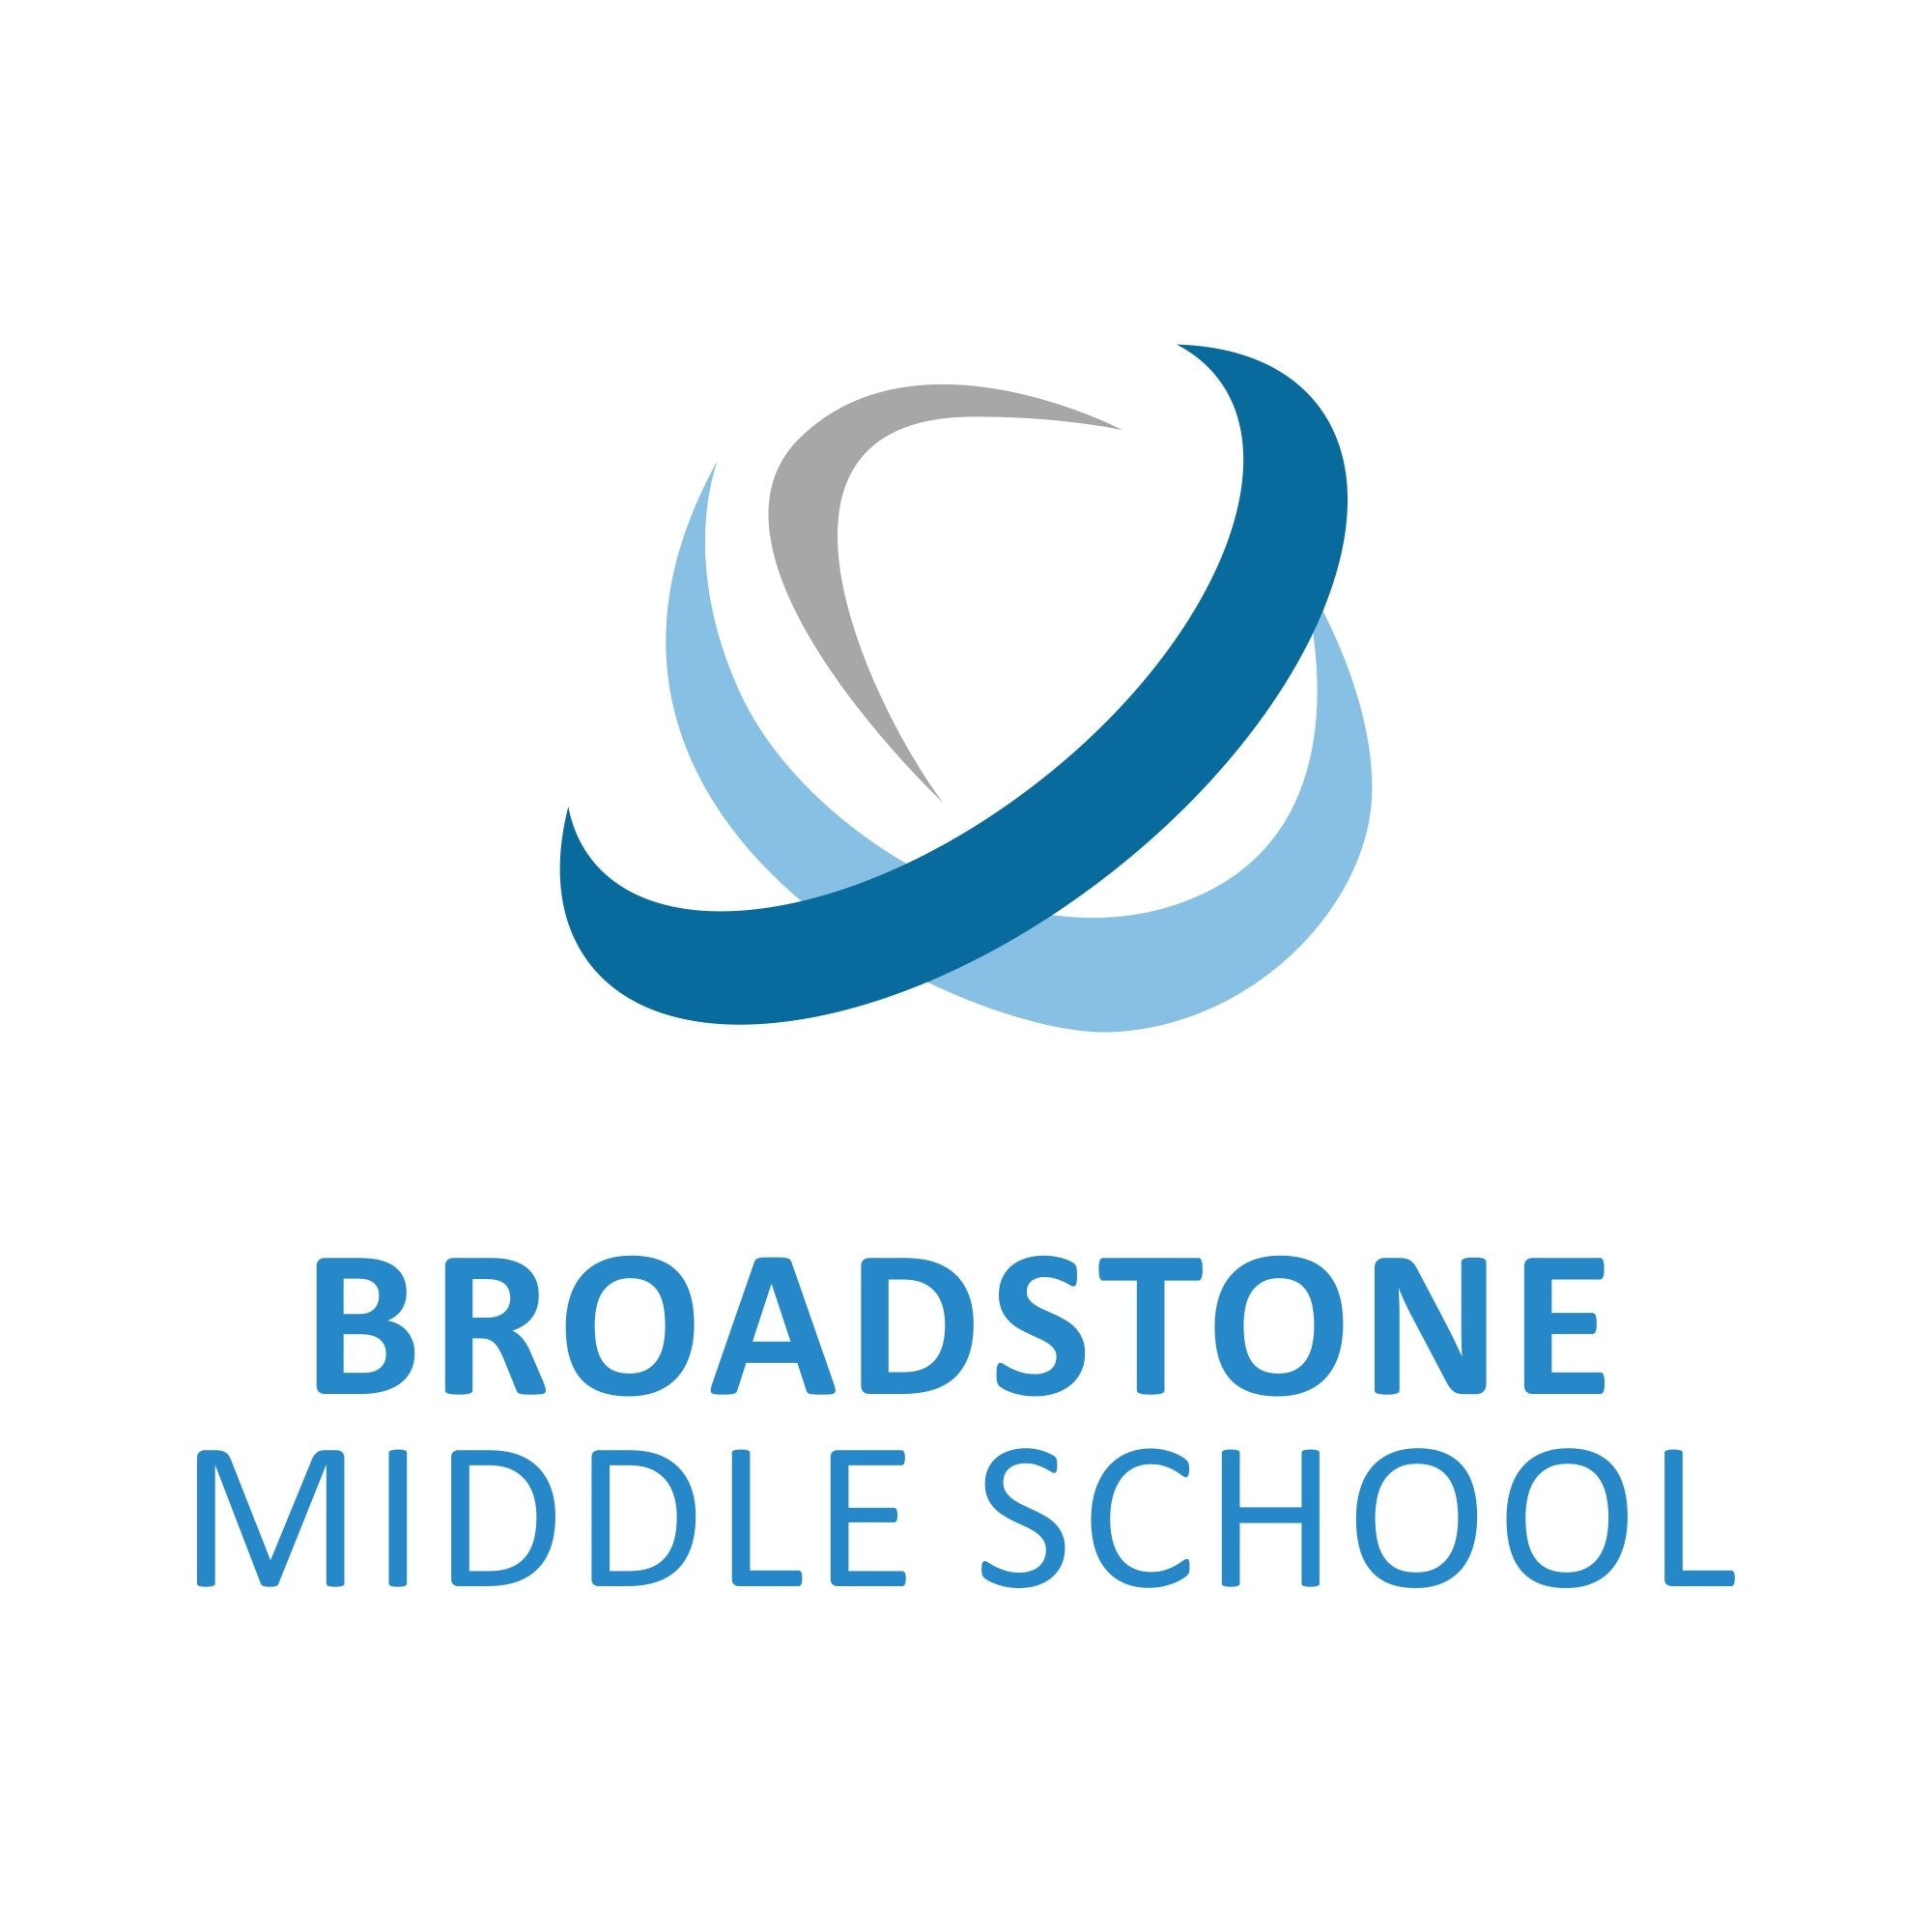 Broadstone Middle School